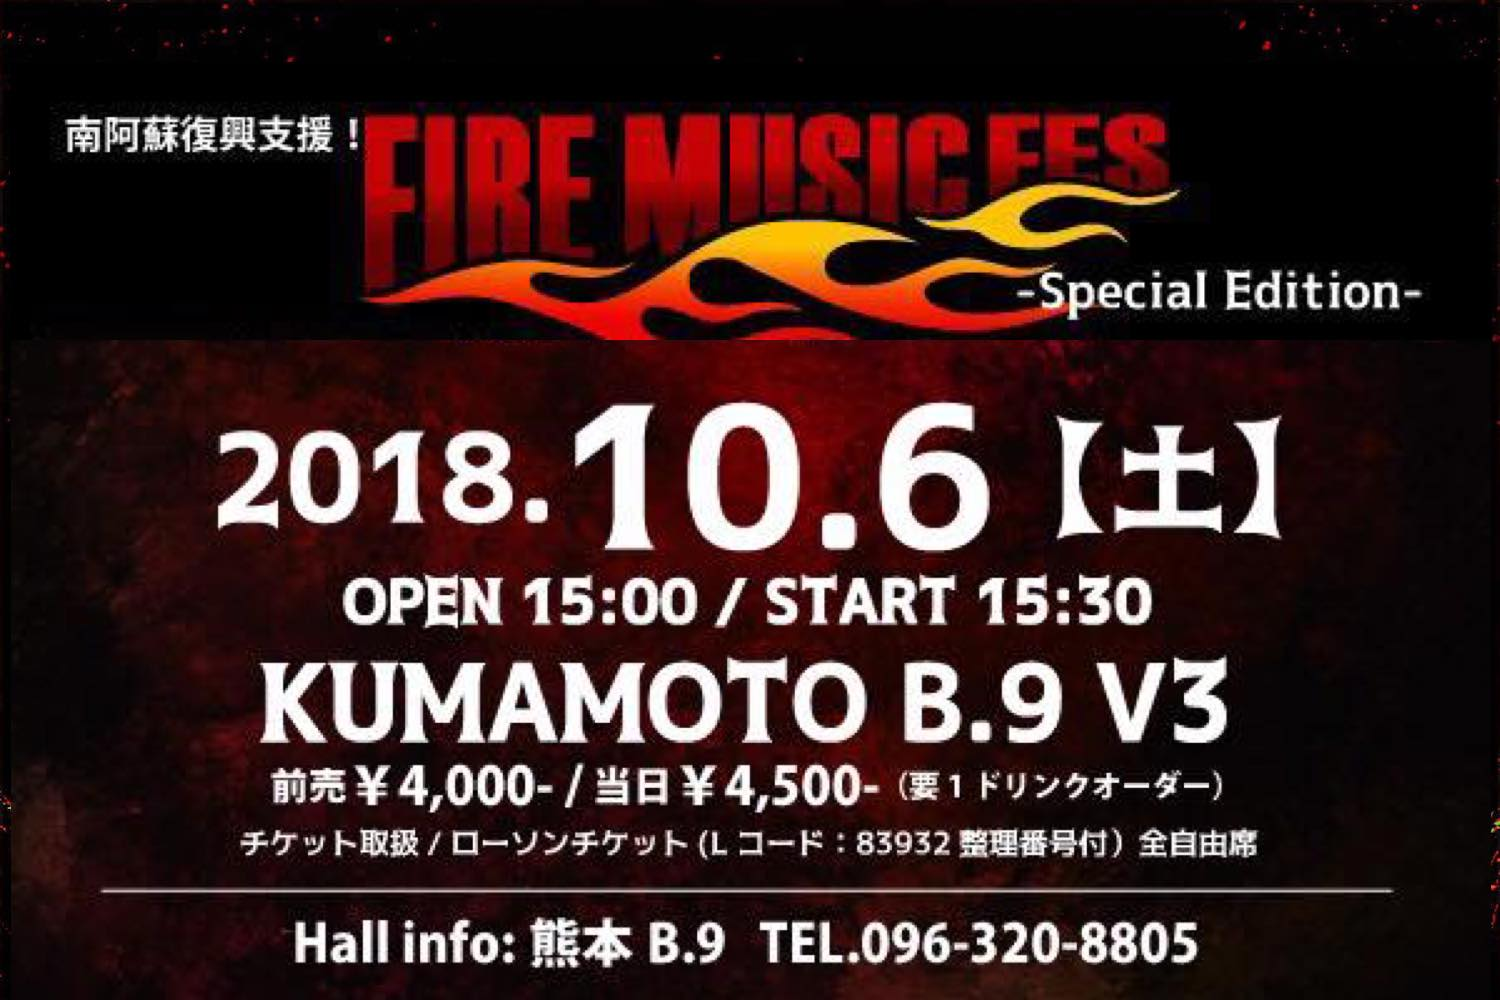 南阿蘇復興支援!Fire Music Fes. ~Special Edition~開催!10月6日(土)